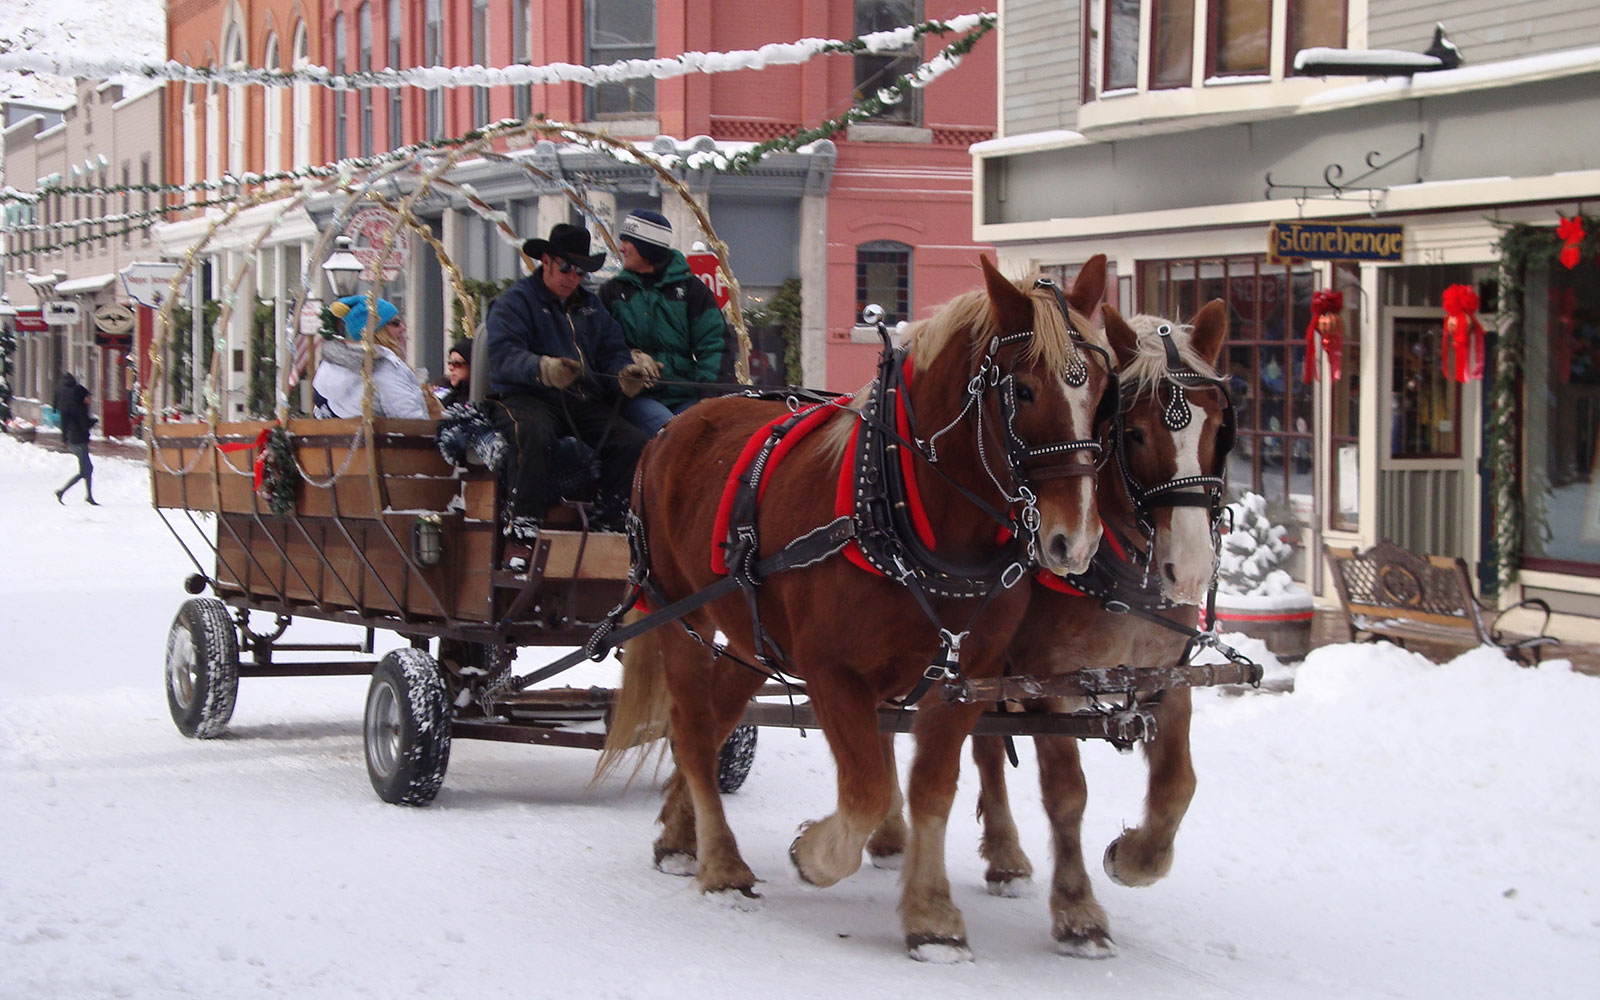 America's Best Christmas Markets: Georgetown Christmas Market, CO